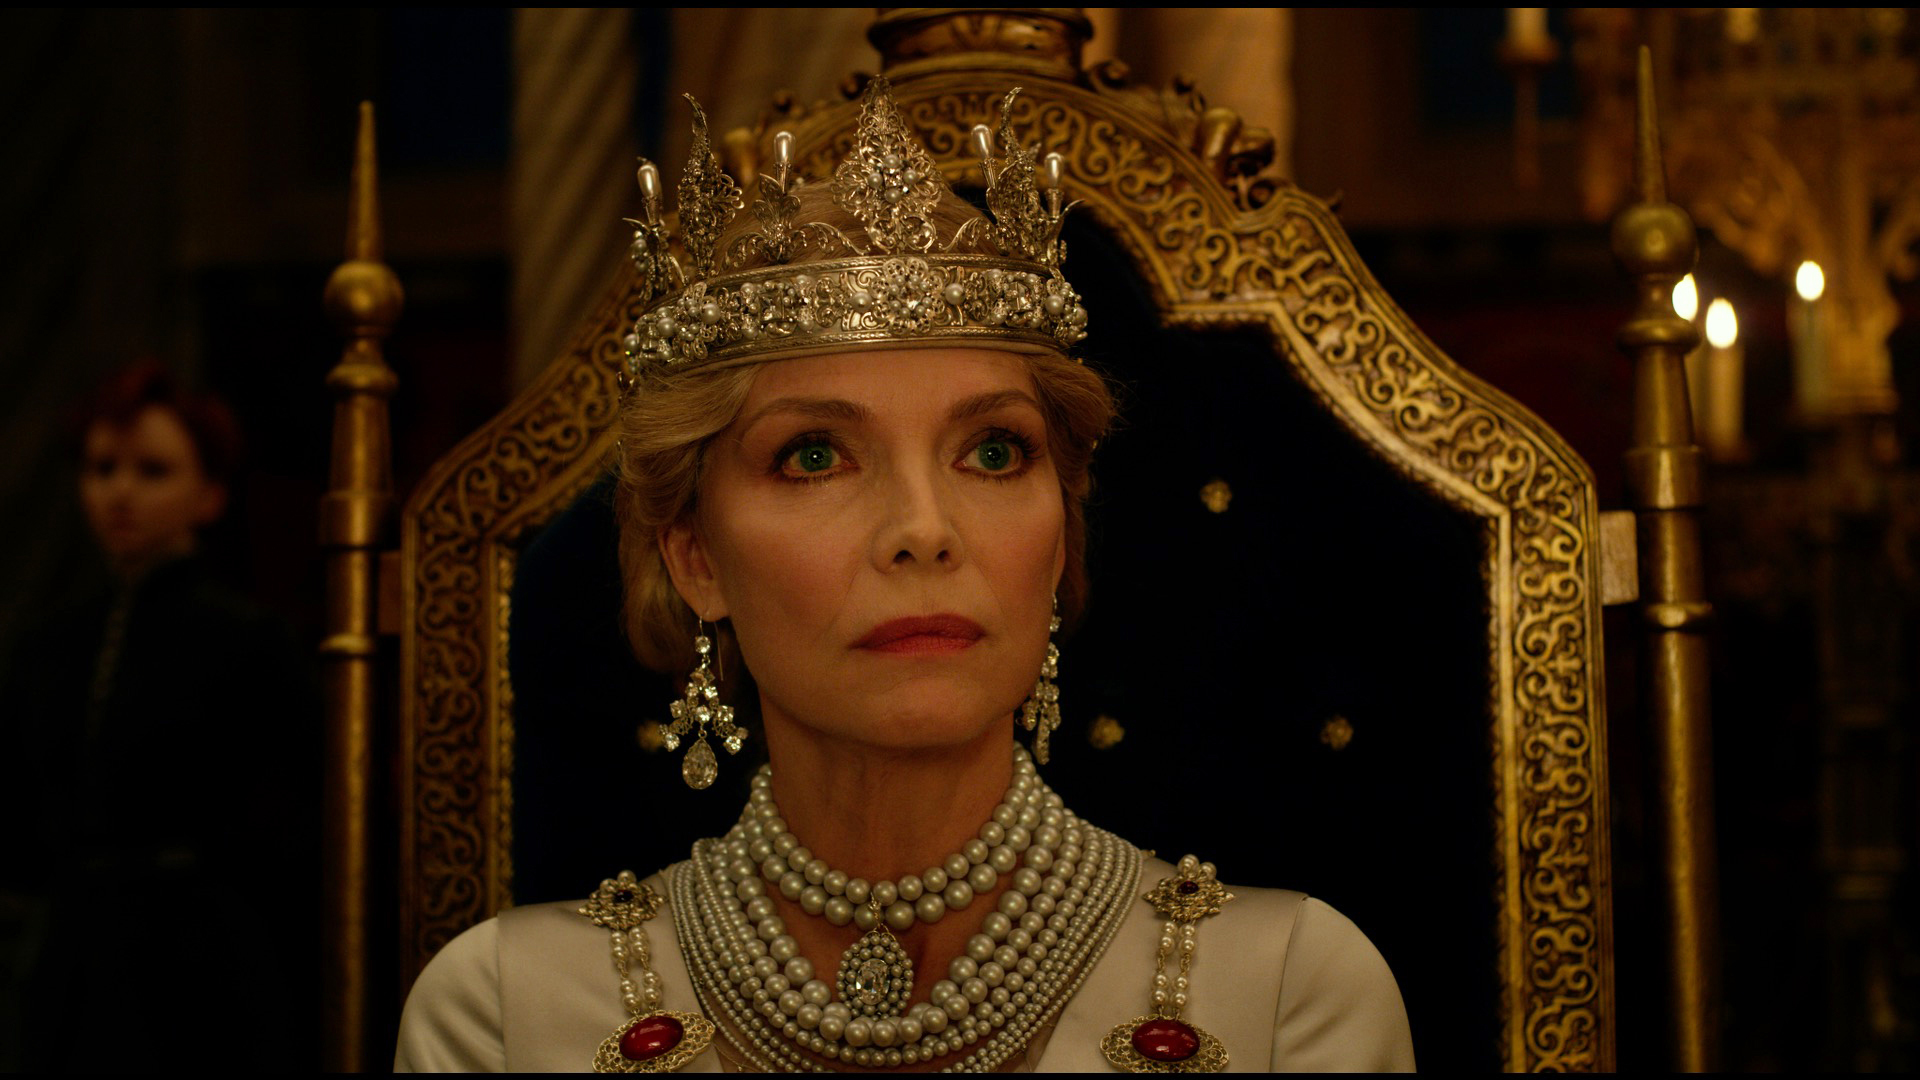 'Maleficent: Mistress of Evil': Joachim Rønning Gets Timely With Michelle Pfeiffer's Divisive Queen Ingrith